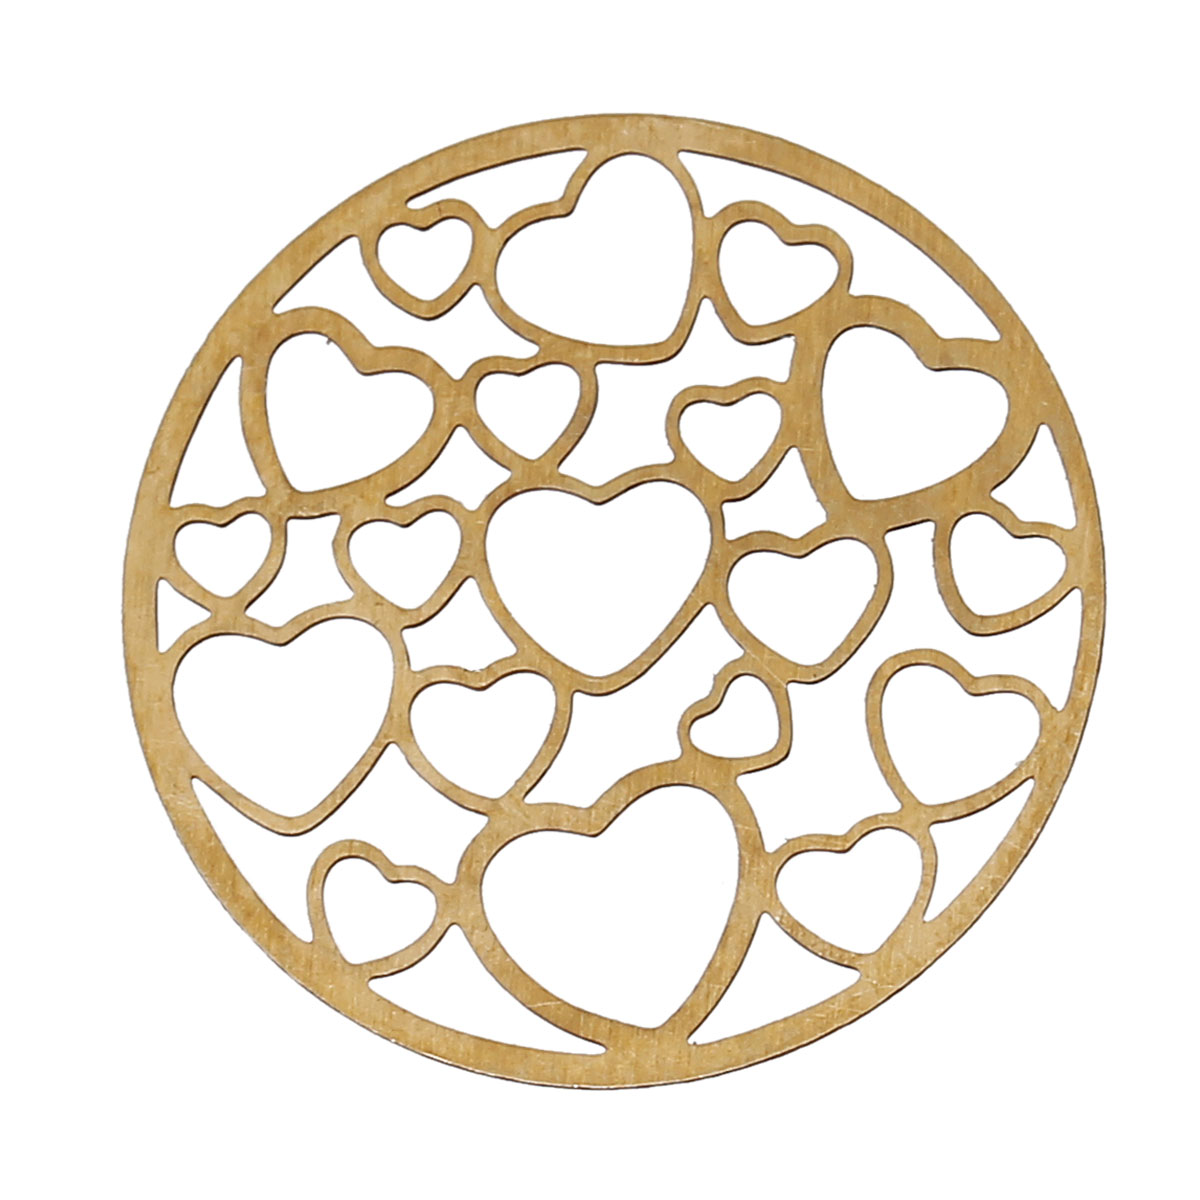 DoreenBeads Copper Embellishments Findings Round Brass Tone Hollow Heart Pattern Blank 22mm(7/8)Dia,50 PCs